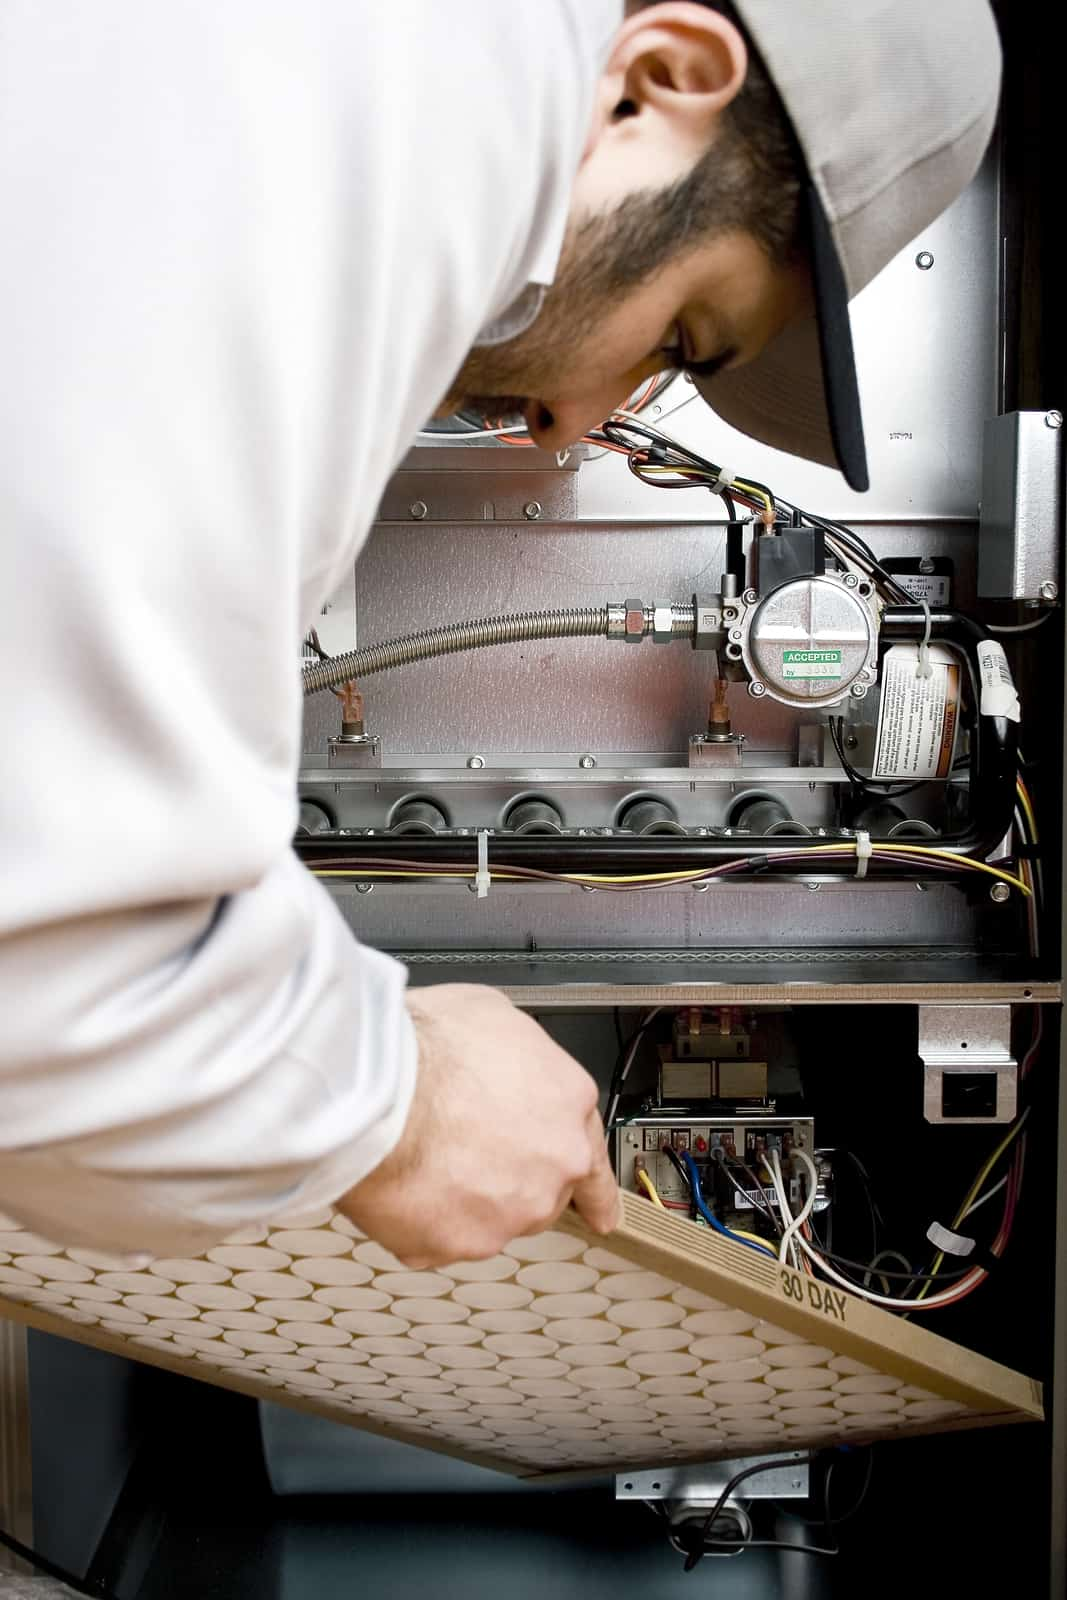 Furnace tune-up by McHales in Bucks County, PA